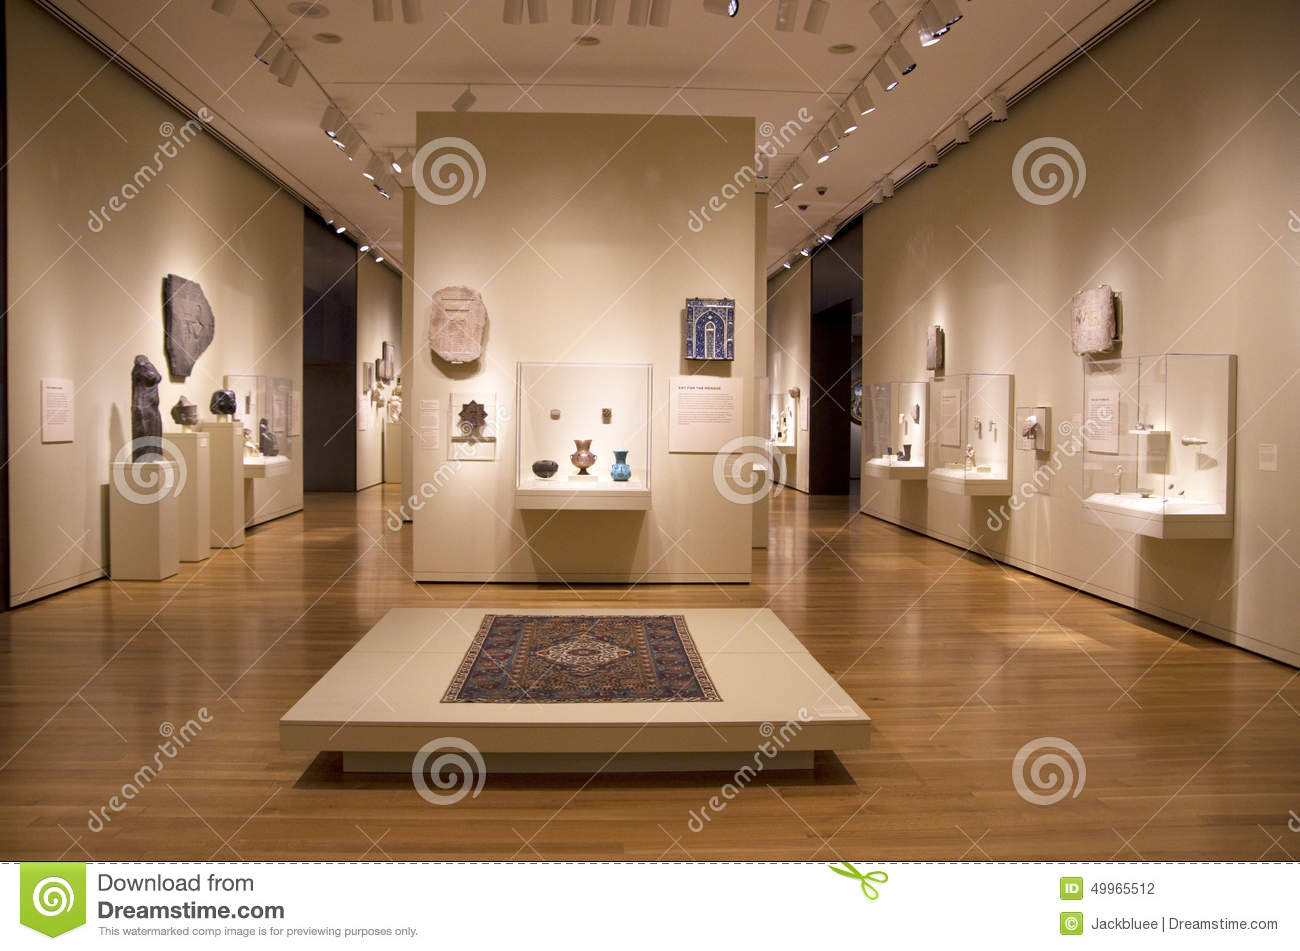 Awesome Seattle Art Museum Interior Editorial Photography   Image Of Interior,  Space: 49965512